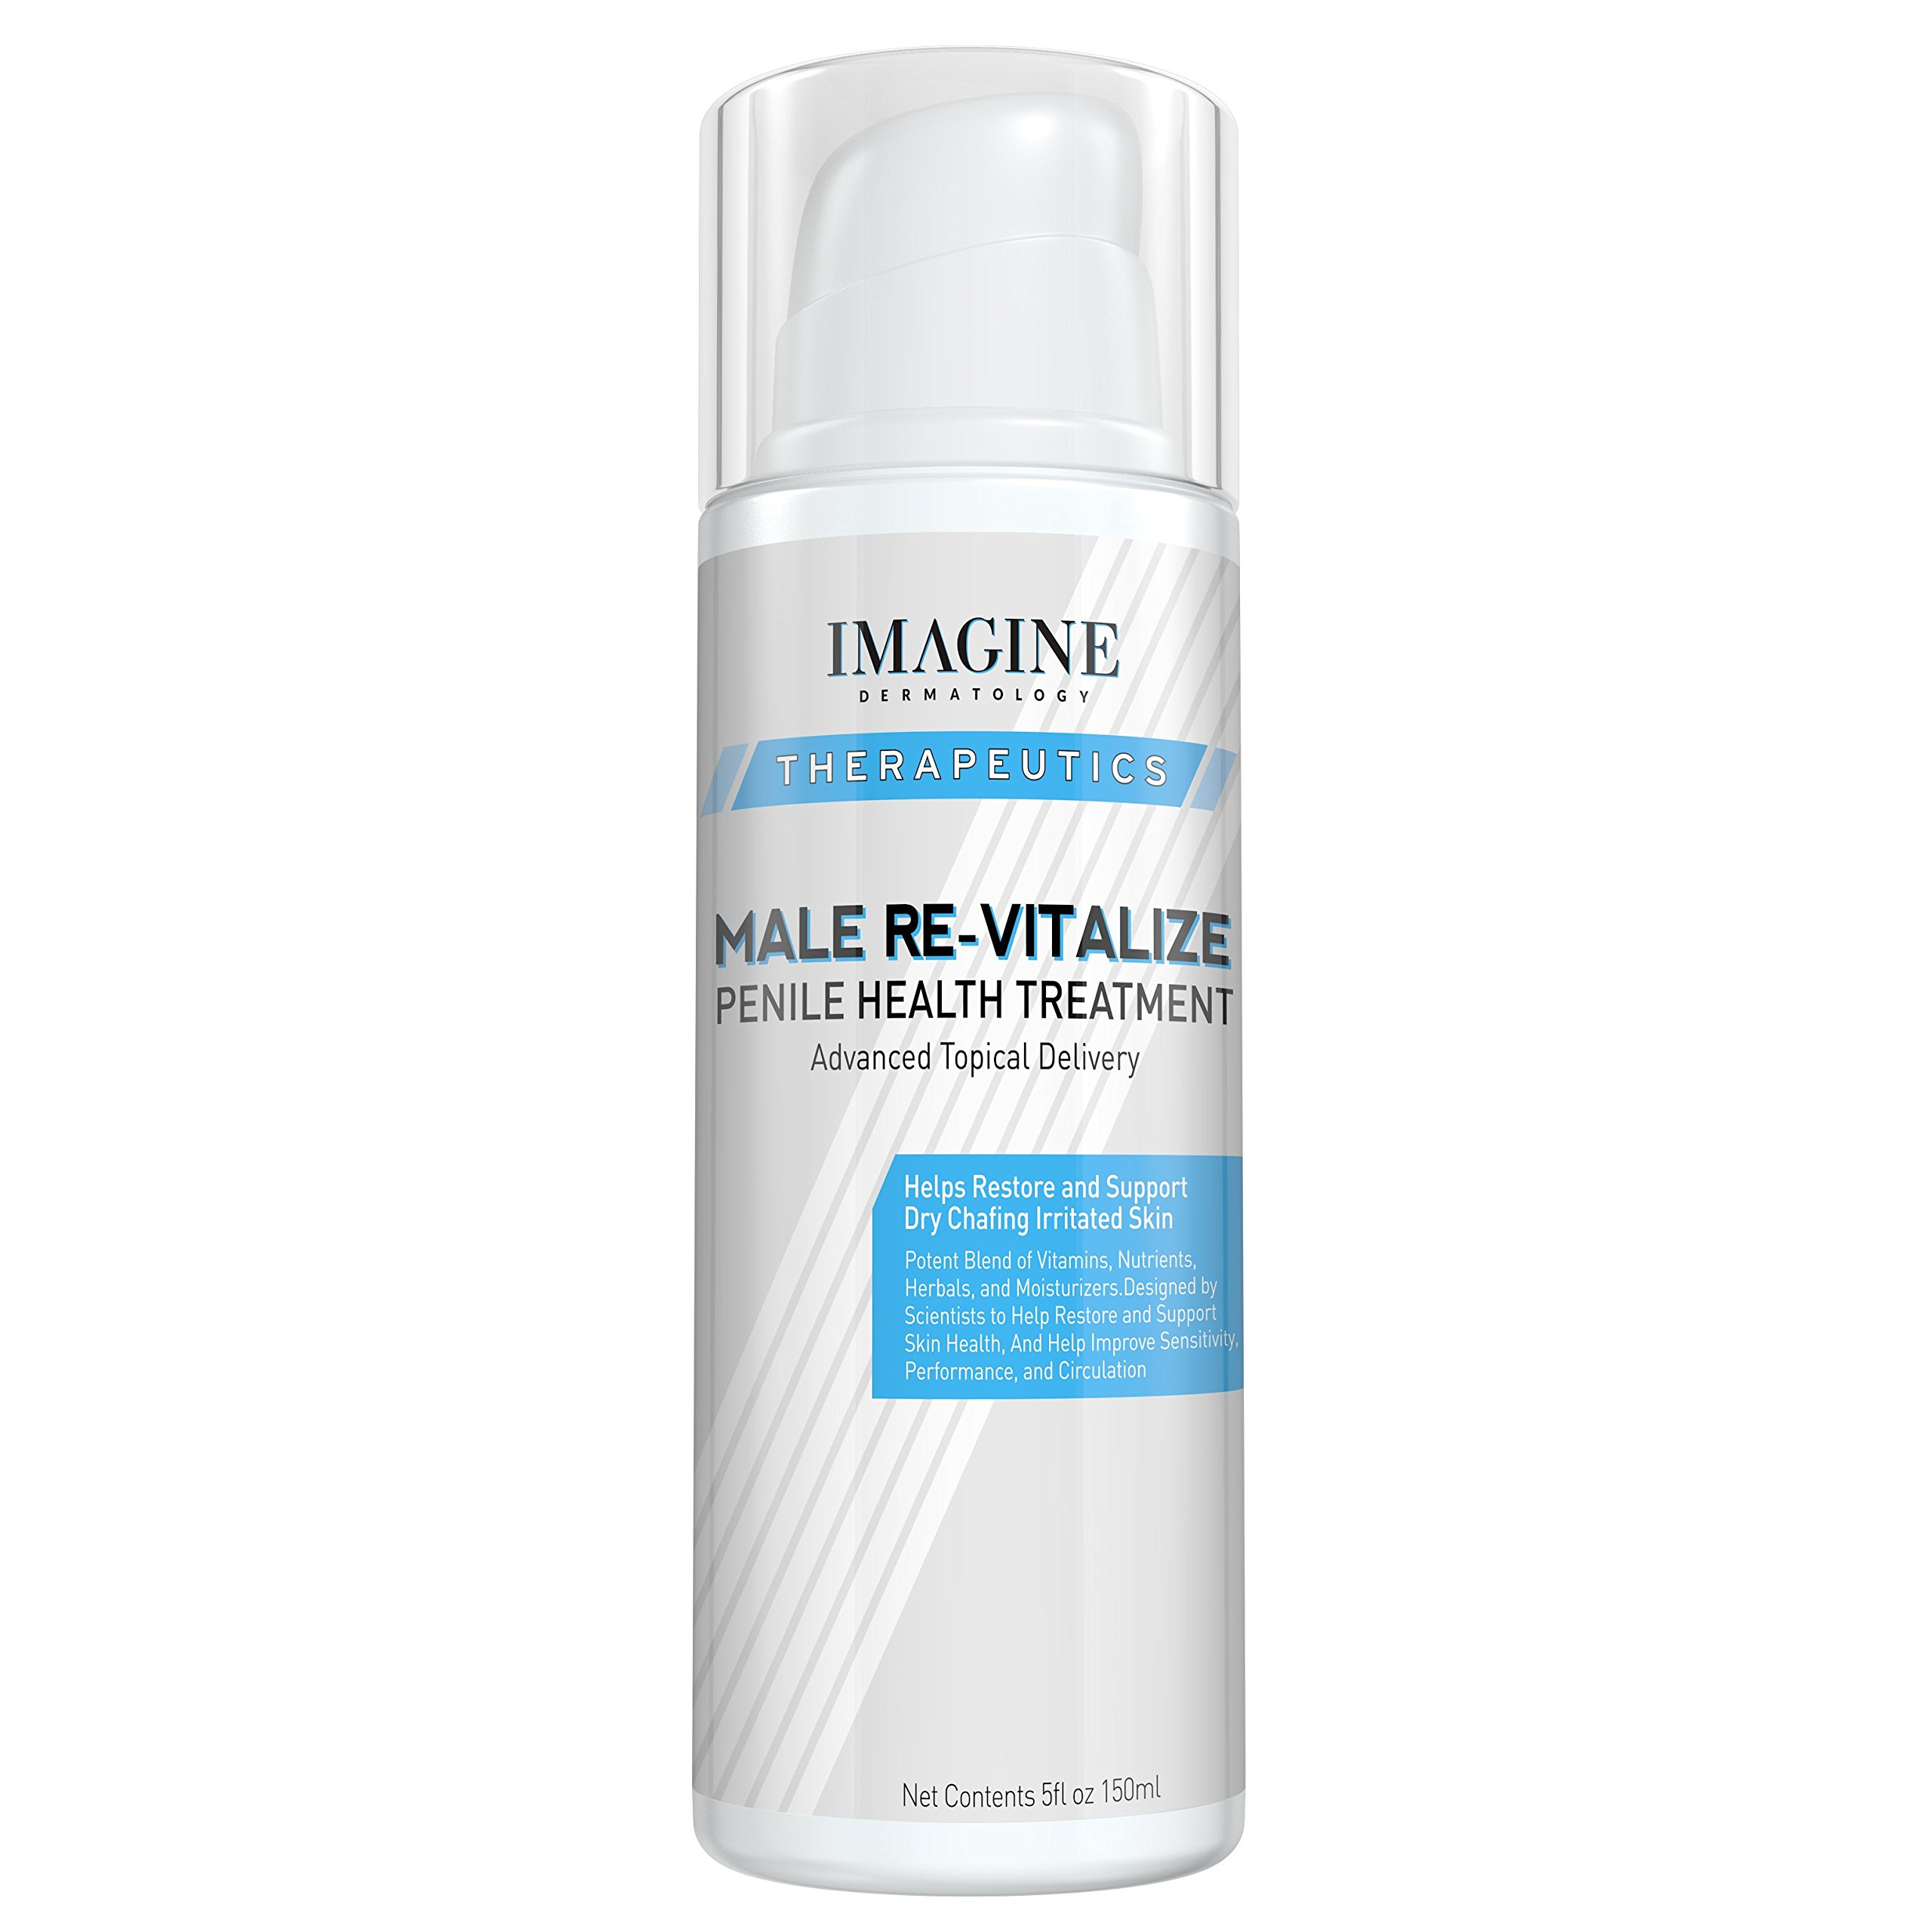 Penile Health Relief Cream No Mess Pump Soothe & Protect Red Irritated Chaffed Skin Male Re-Vitalize Large Value Size (5fl oz/ 150ml) 60 Day Return for Any Reason by Imagine Dermatology